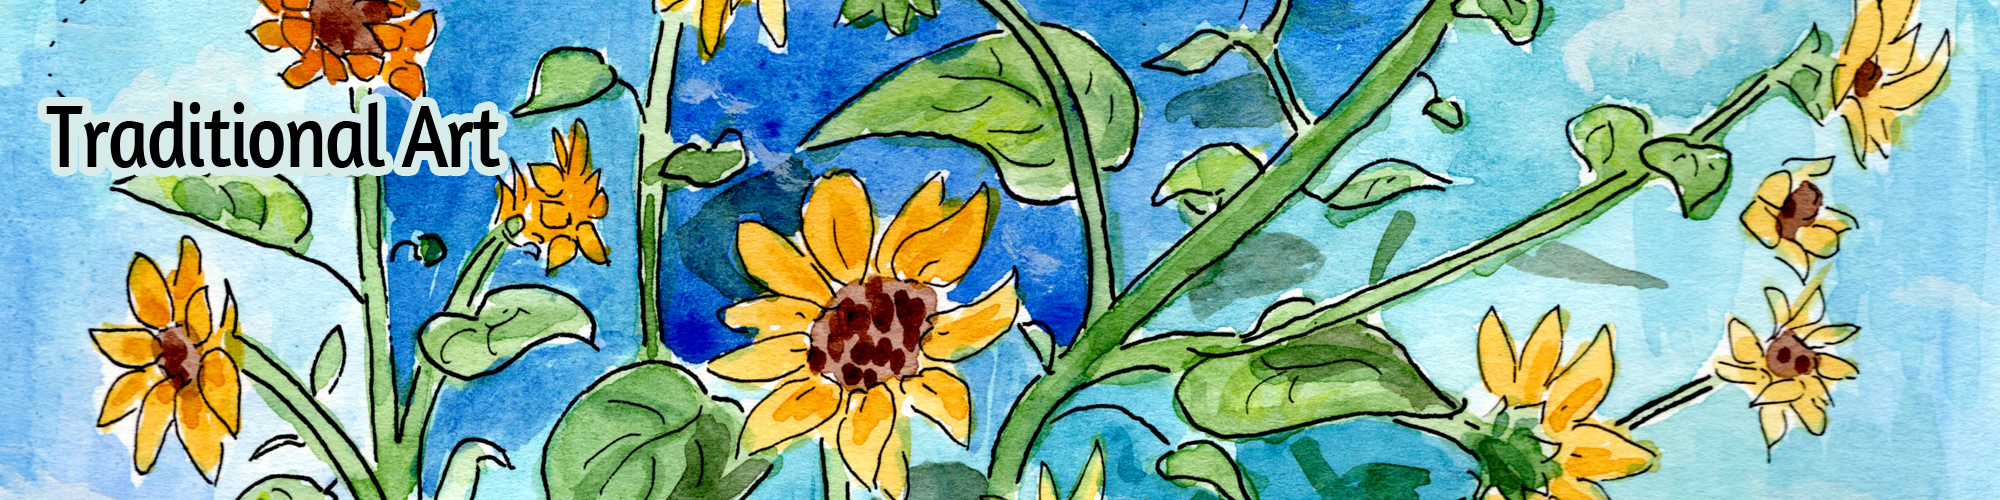 a watercolor illustration of sunflowers